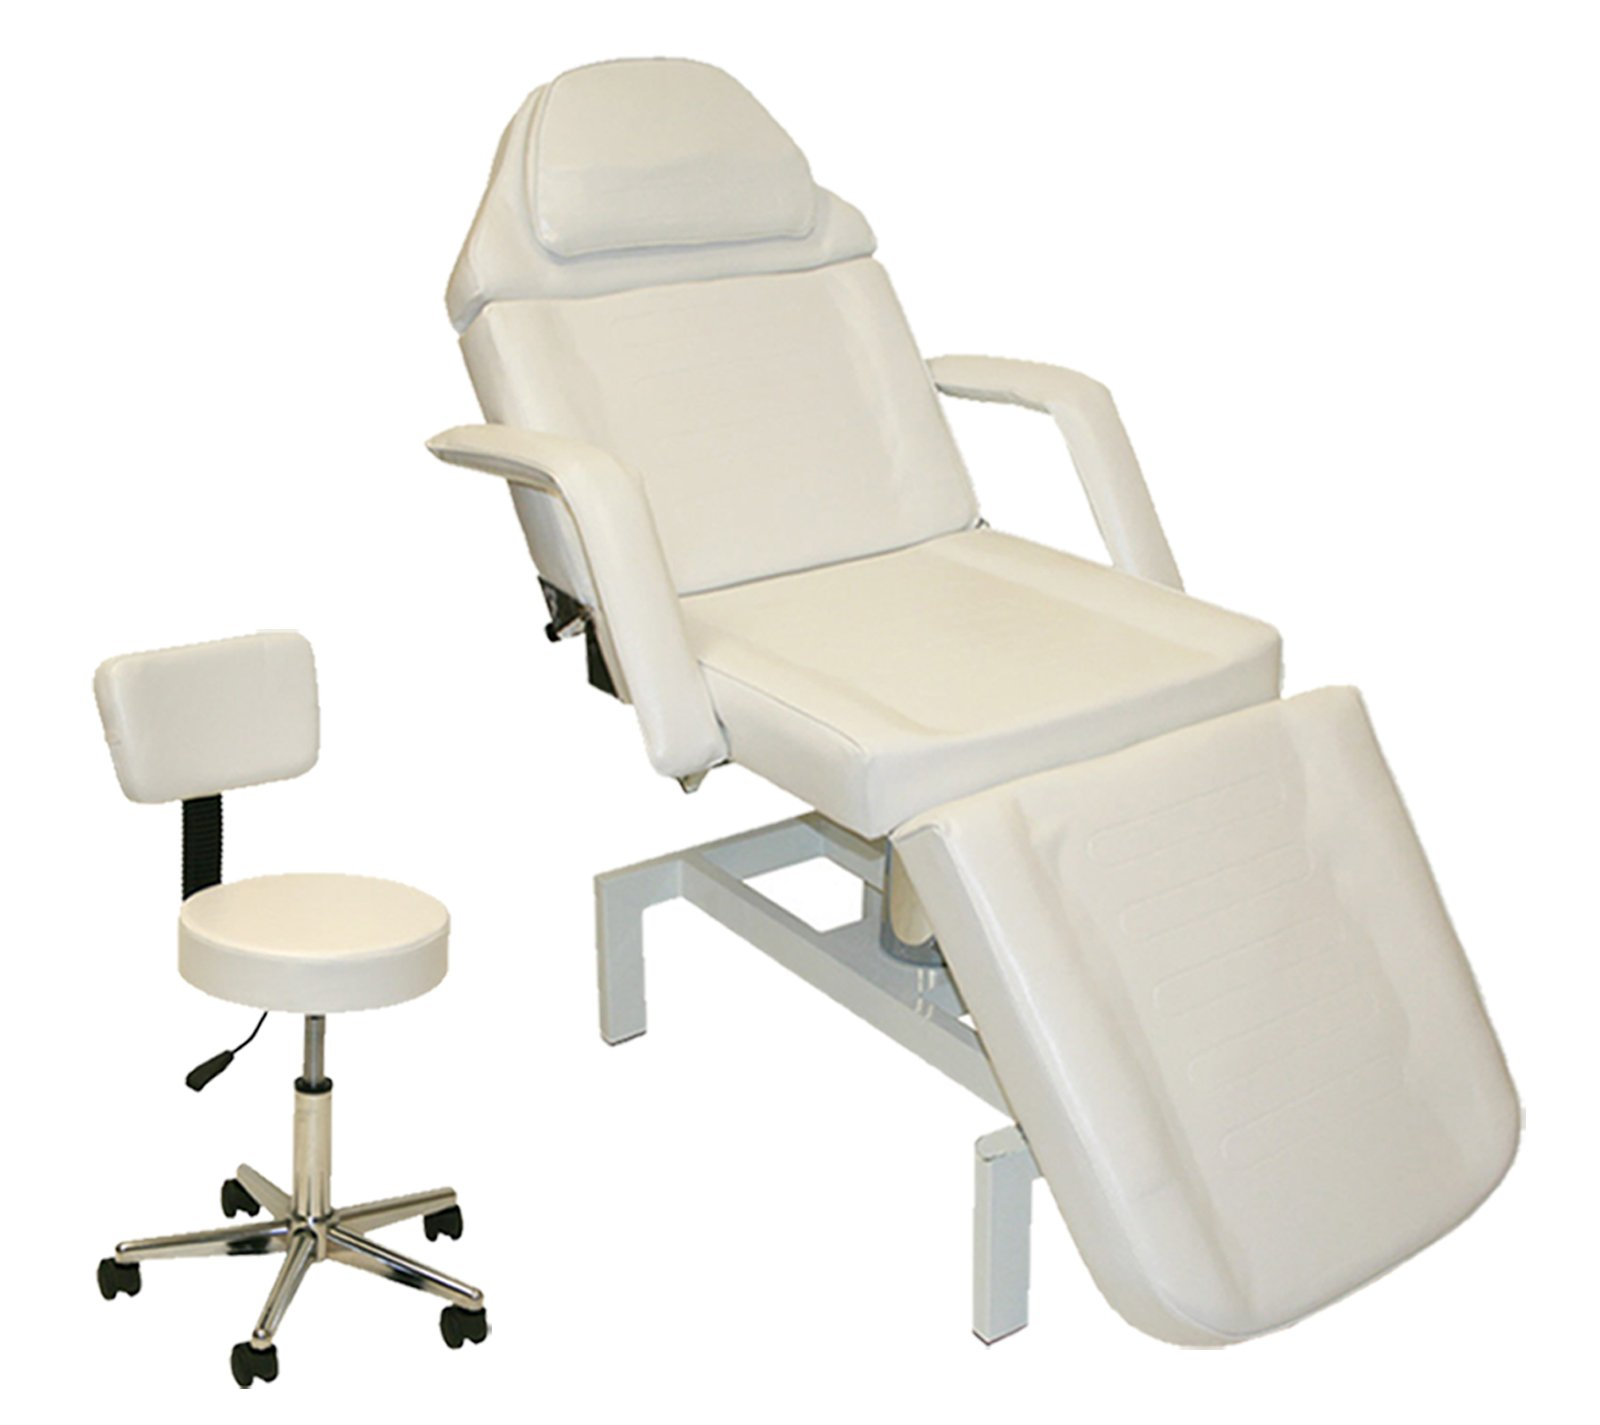 LCL Beauty 11 in 1 Multifunction Facial Machine & Fully Adjustable Hydraulic Bed Chair Package by LCL Beauty (Image #3)